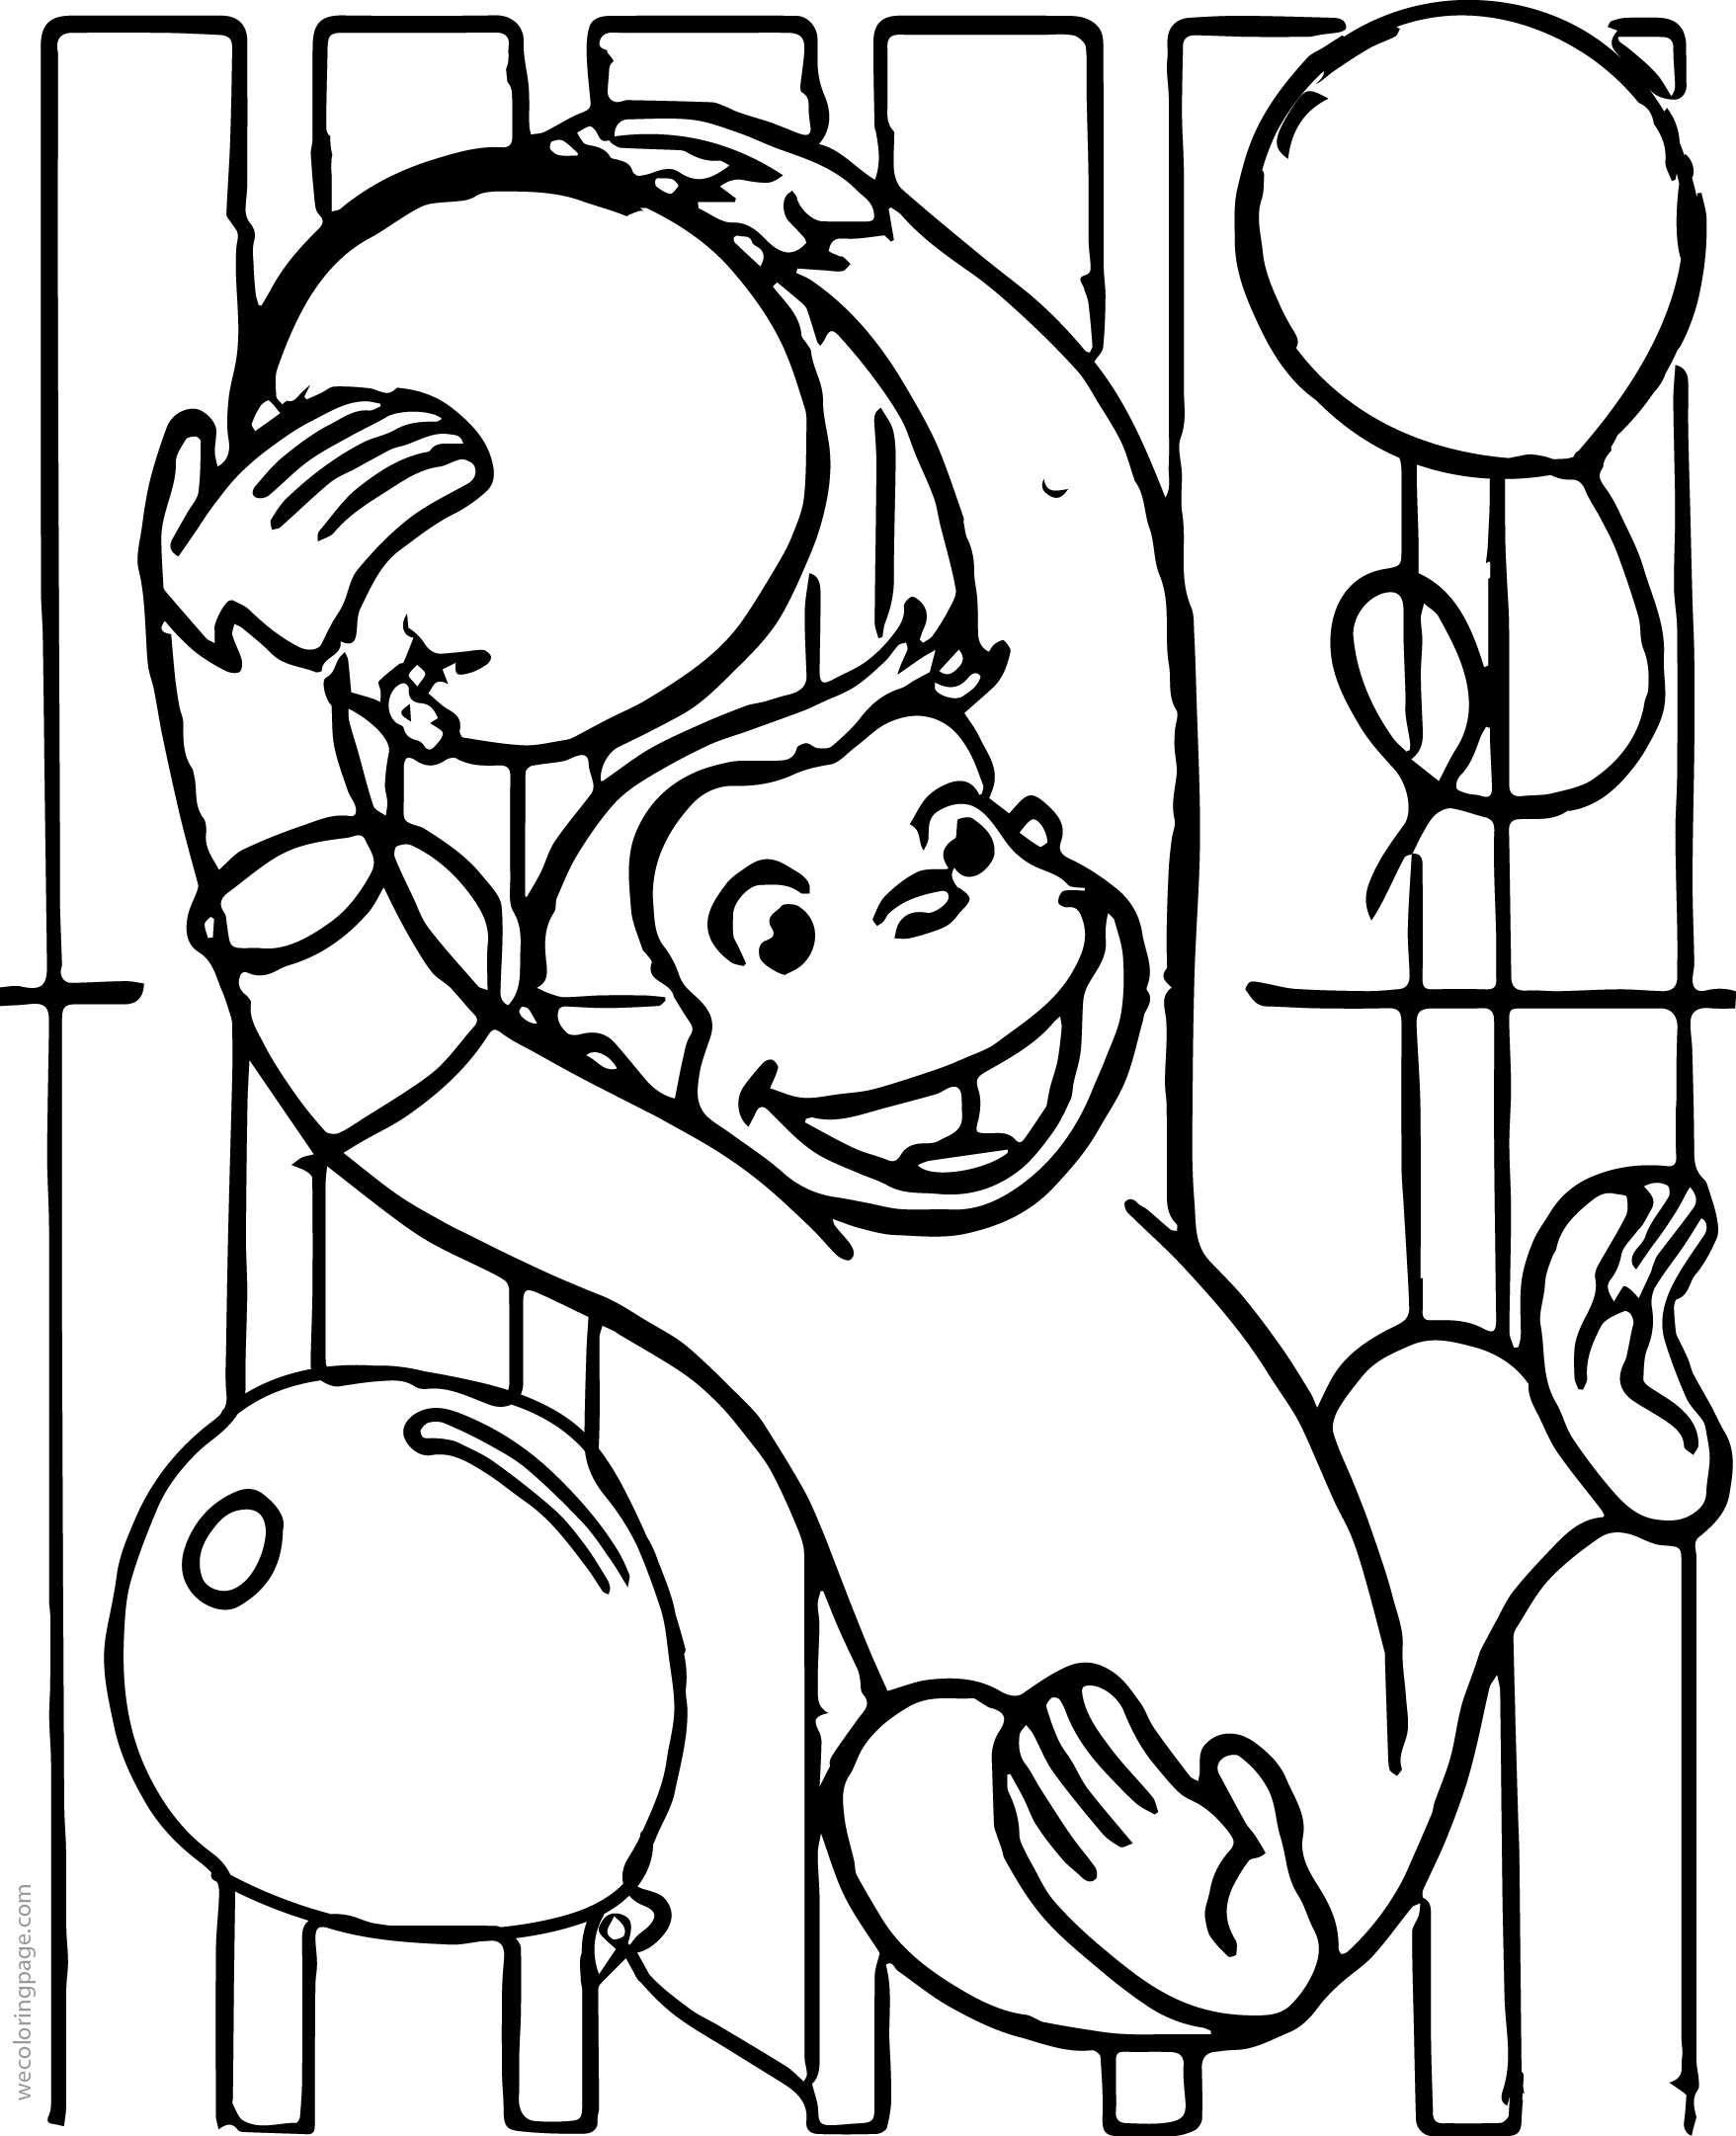 curious george printables coloring pages - curious george party invitations coloring page